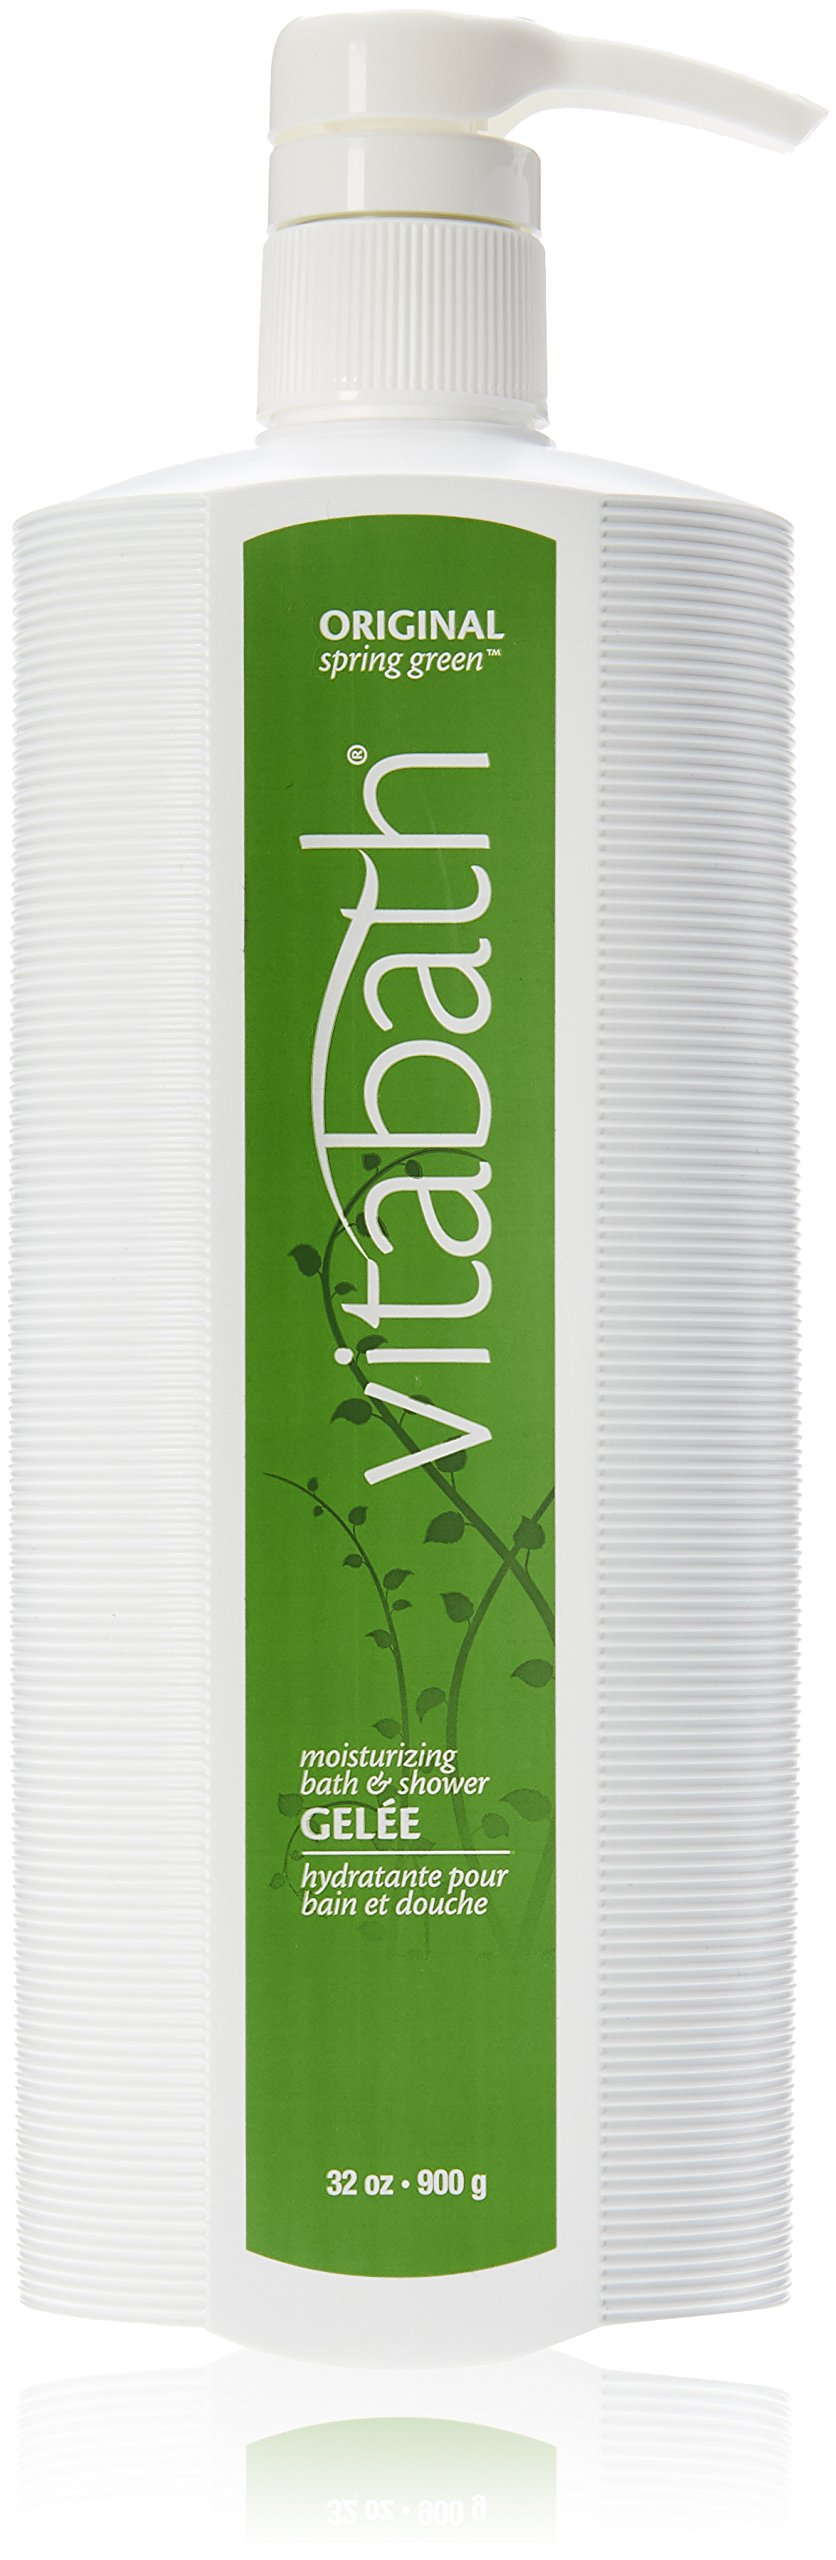 Vitabath Moisturizing Bath & Shower Gelee, Original Spring Green 32 oz (900 g)